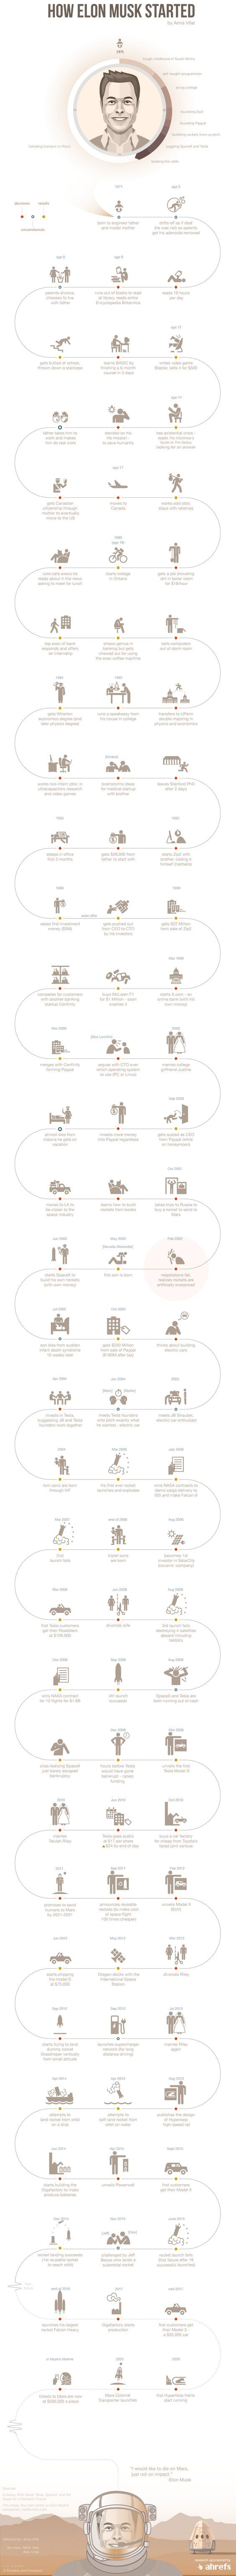 How did Elon Musk Become so Successful? The Journey of his Life Visualized [infographic]